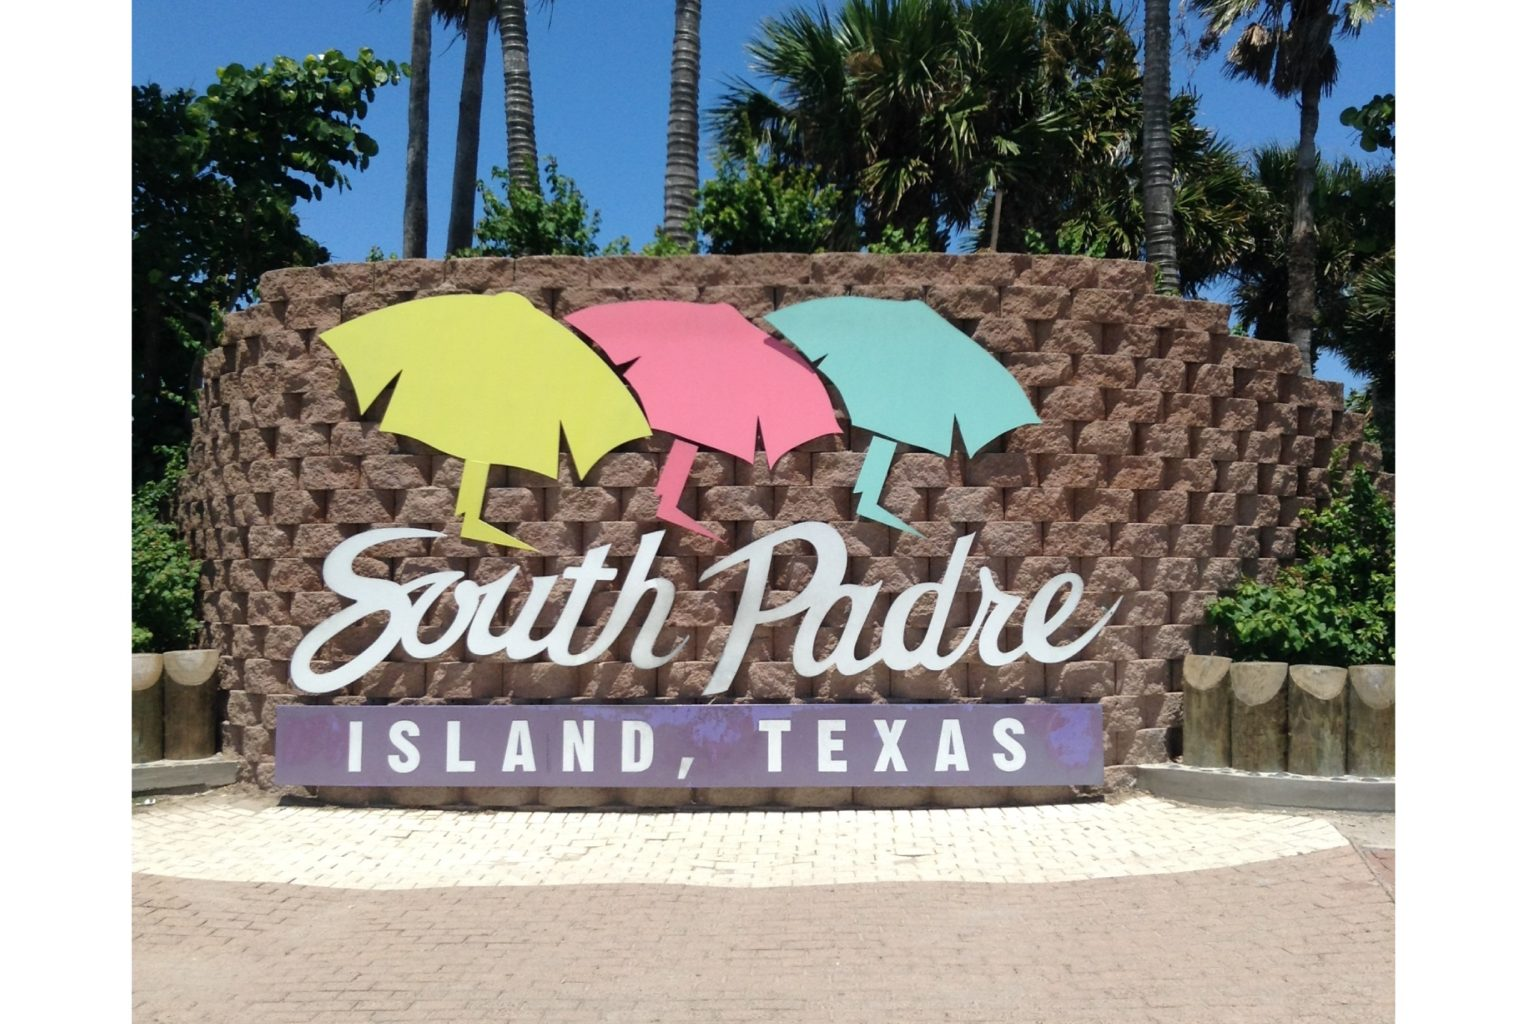 South Padre Island, Texas Beach Property